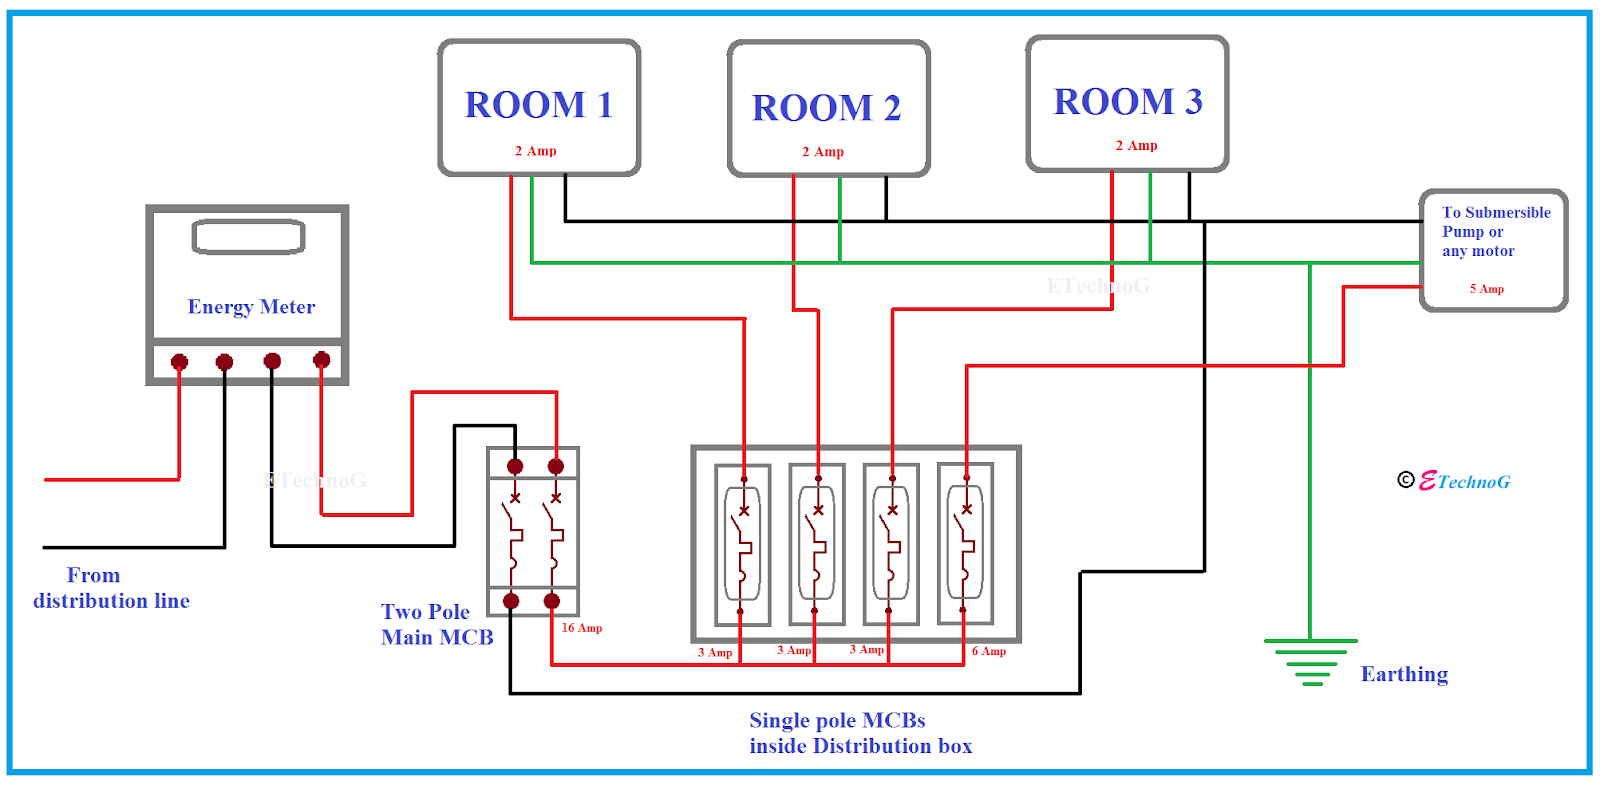 medium resolution of wiring diagram power of a room everything wiring diagram wiring diagram power of a room